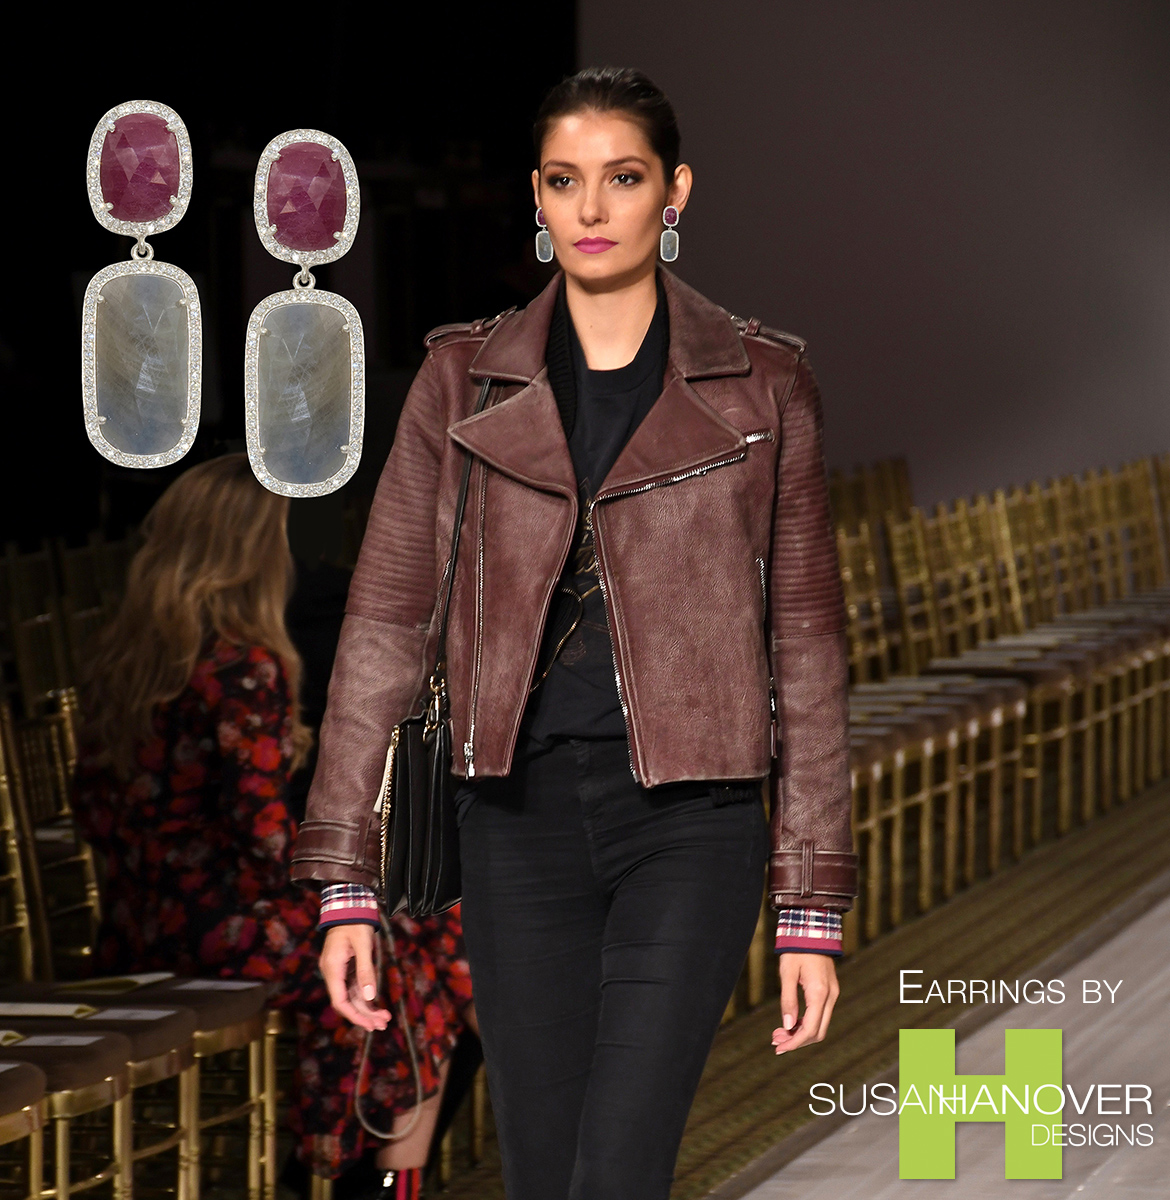 LeatherJkt-runway_Susan_saph-earrings_wine-grey.jpg